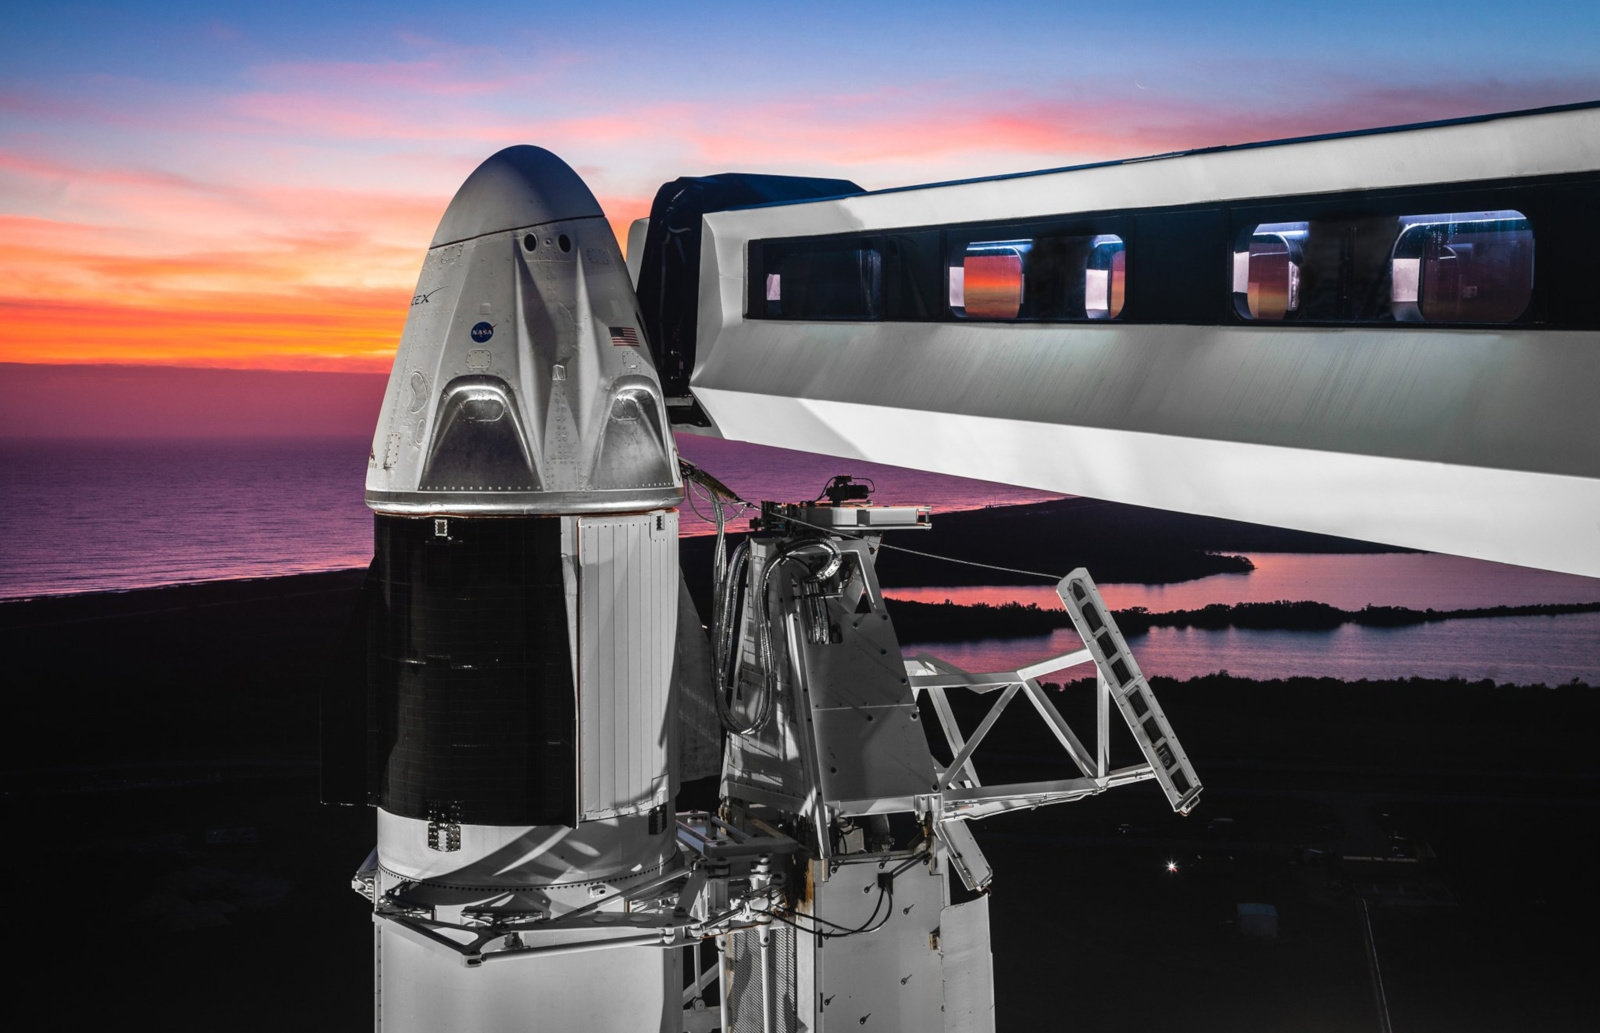 SpaceX postpones first Crew Dragon flight until March 2nd | DeviceDaily.com